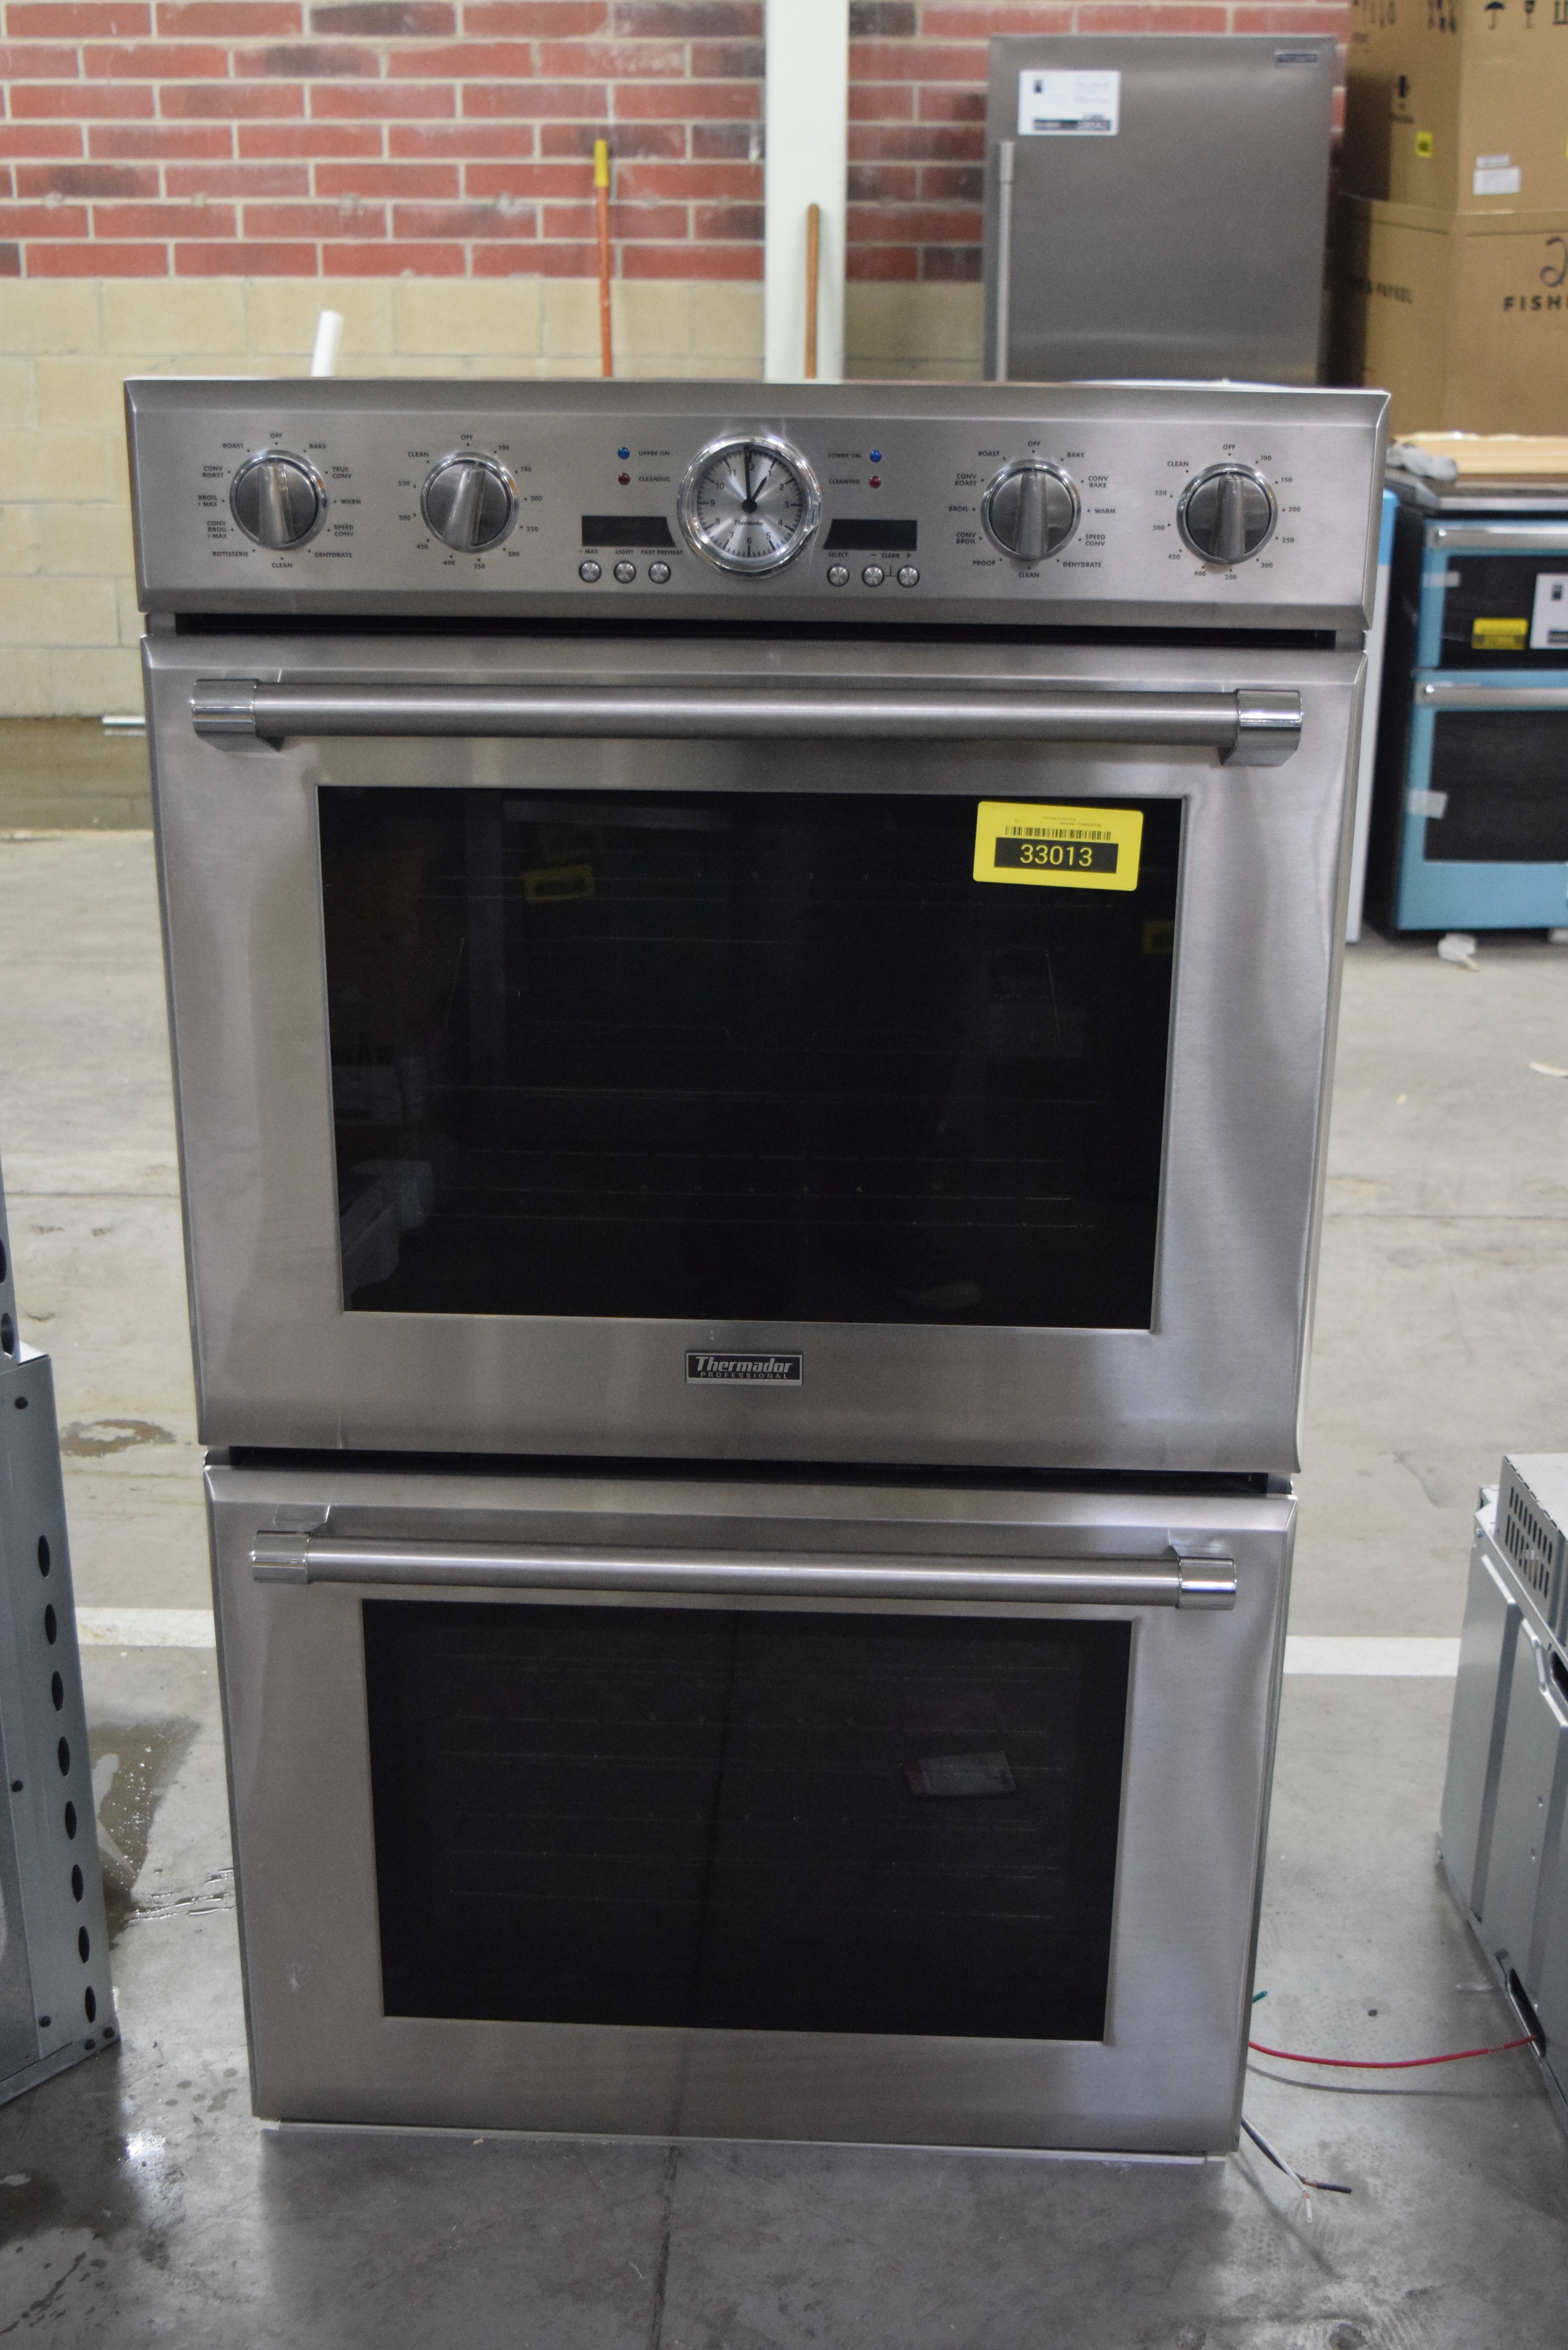 Thermador PODC302J Double Wall Oven Stainless